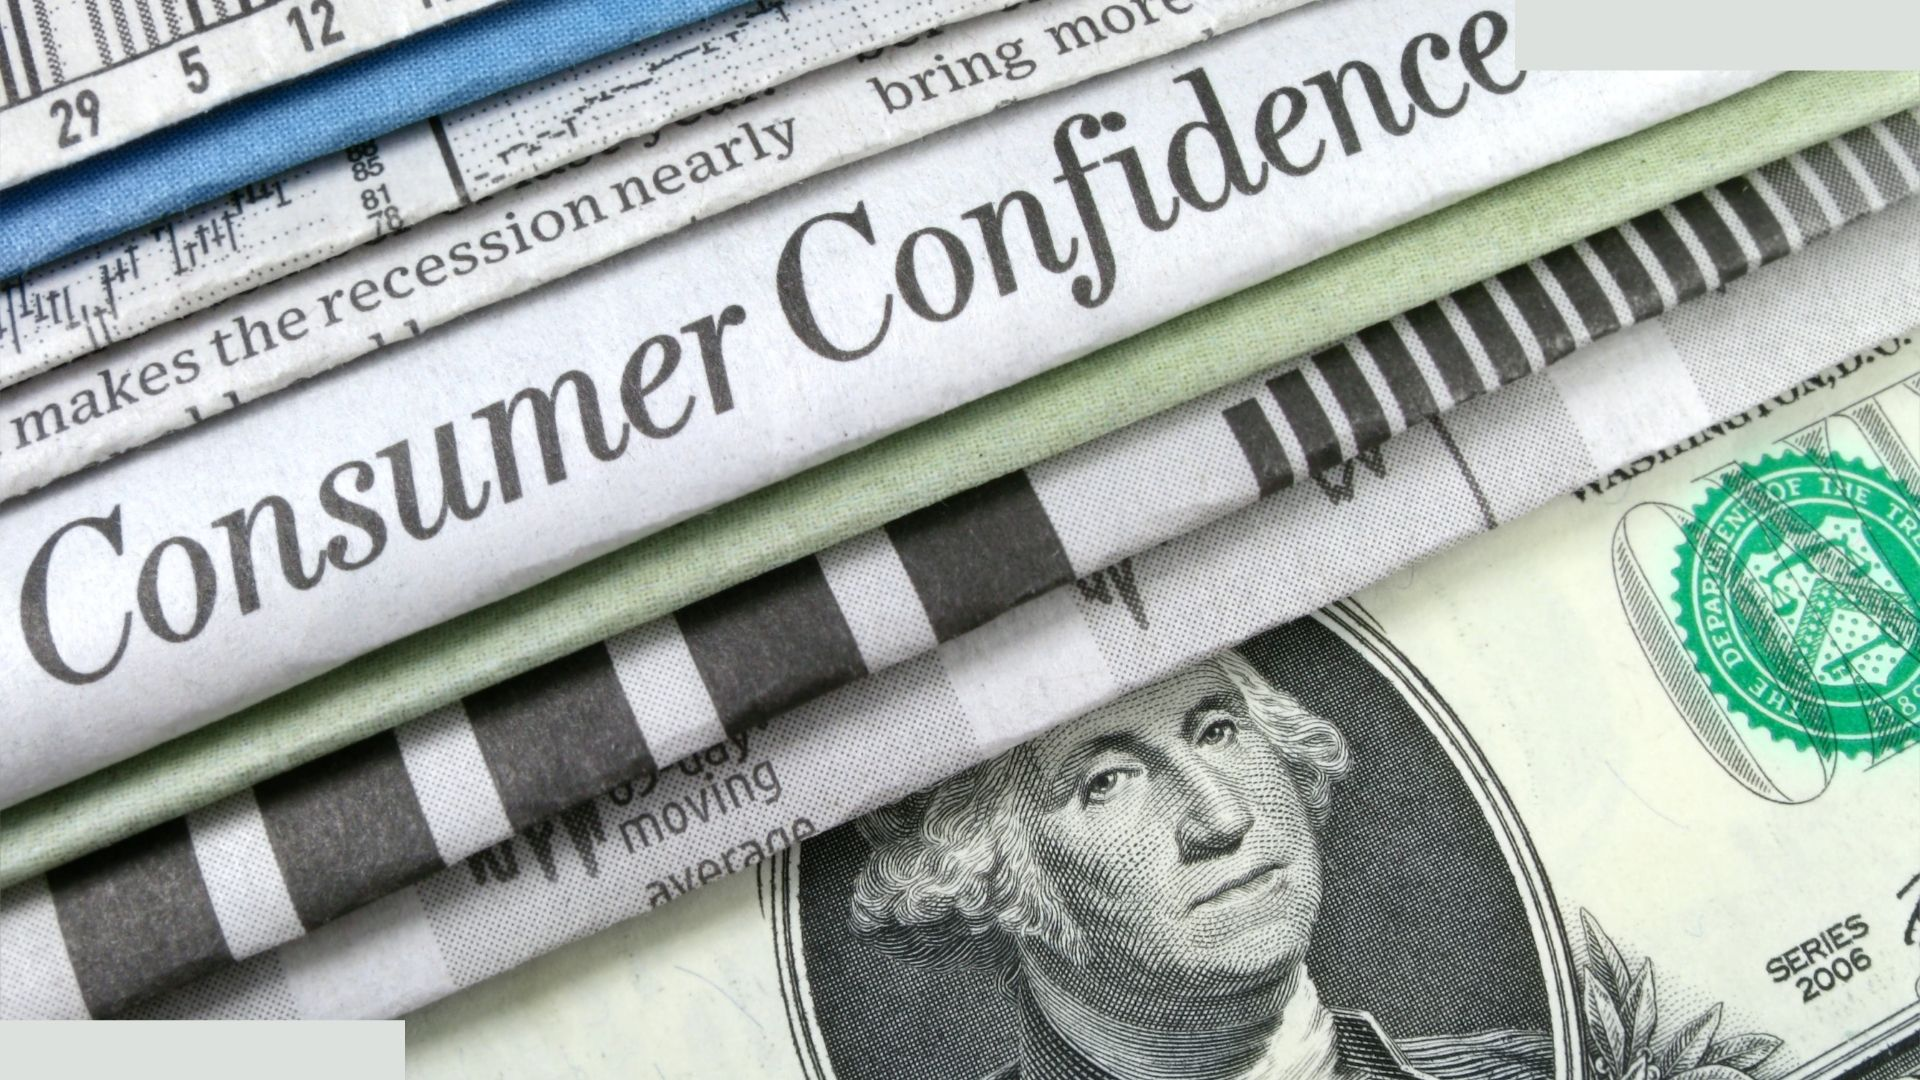 How can banks regain consumer confidence in times of crisis? 33